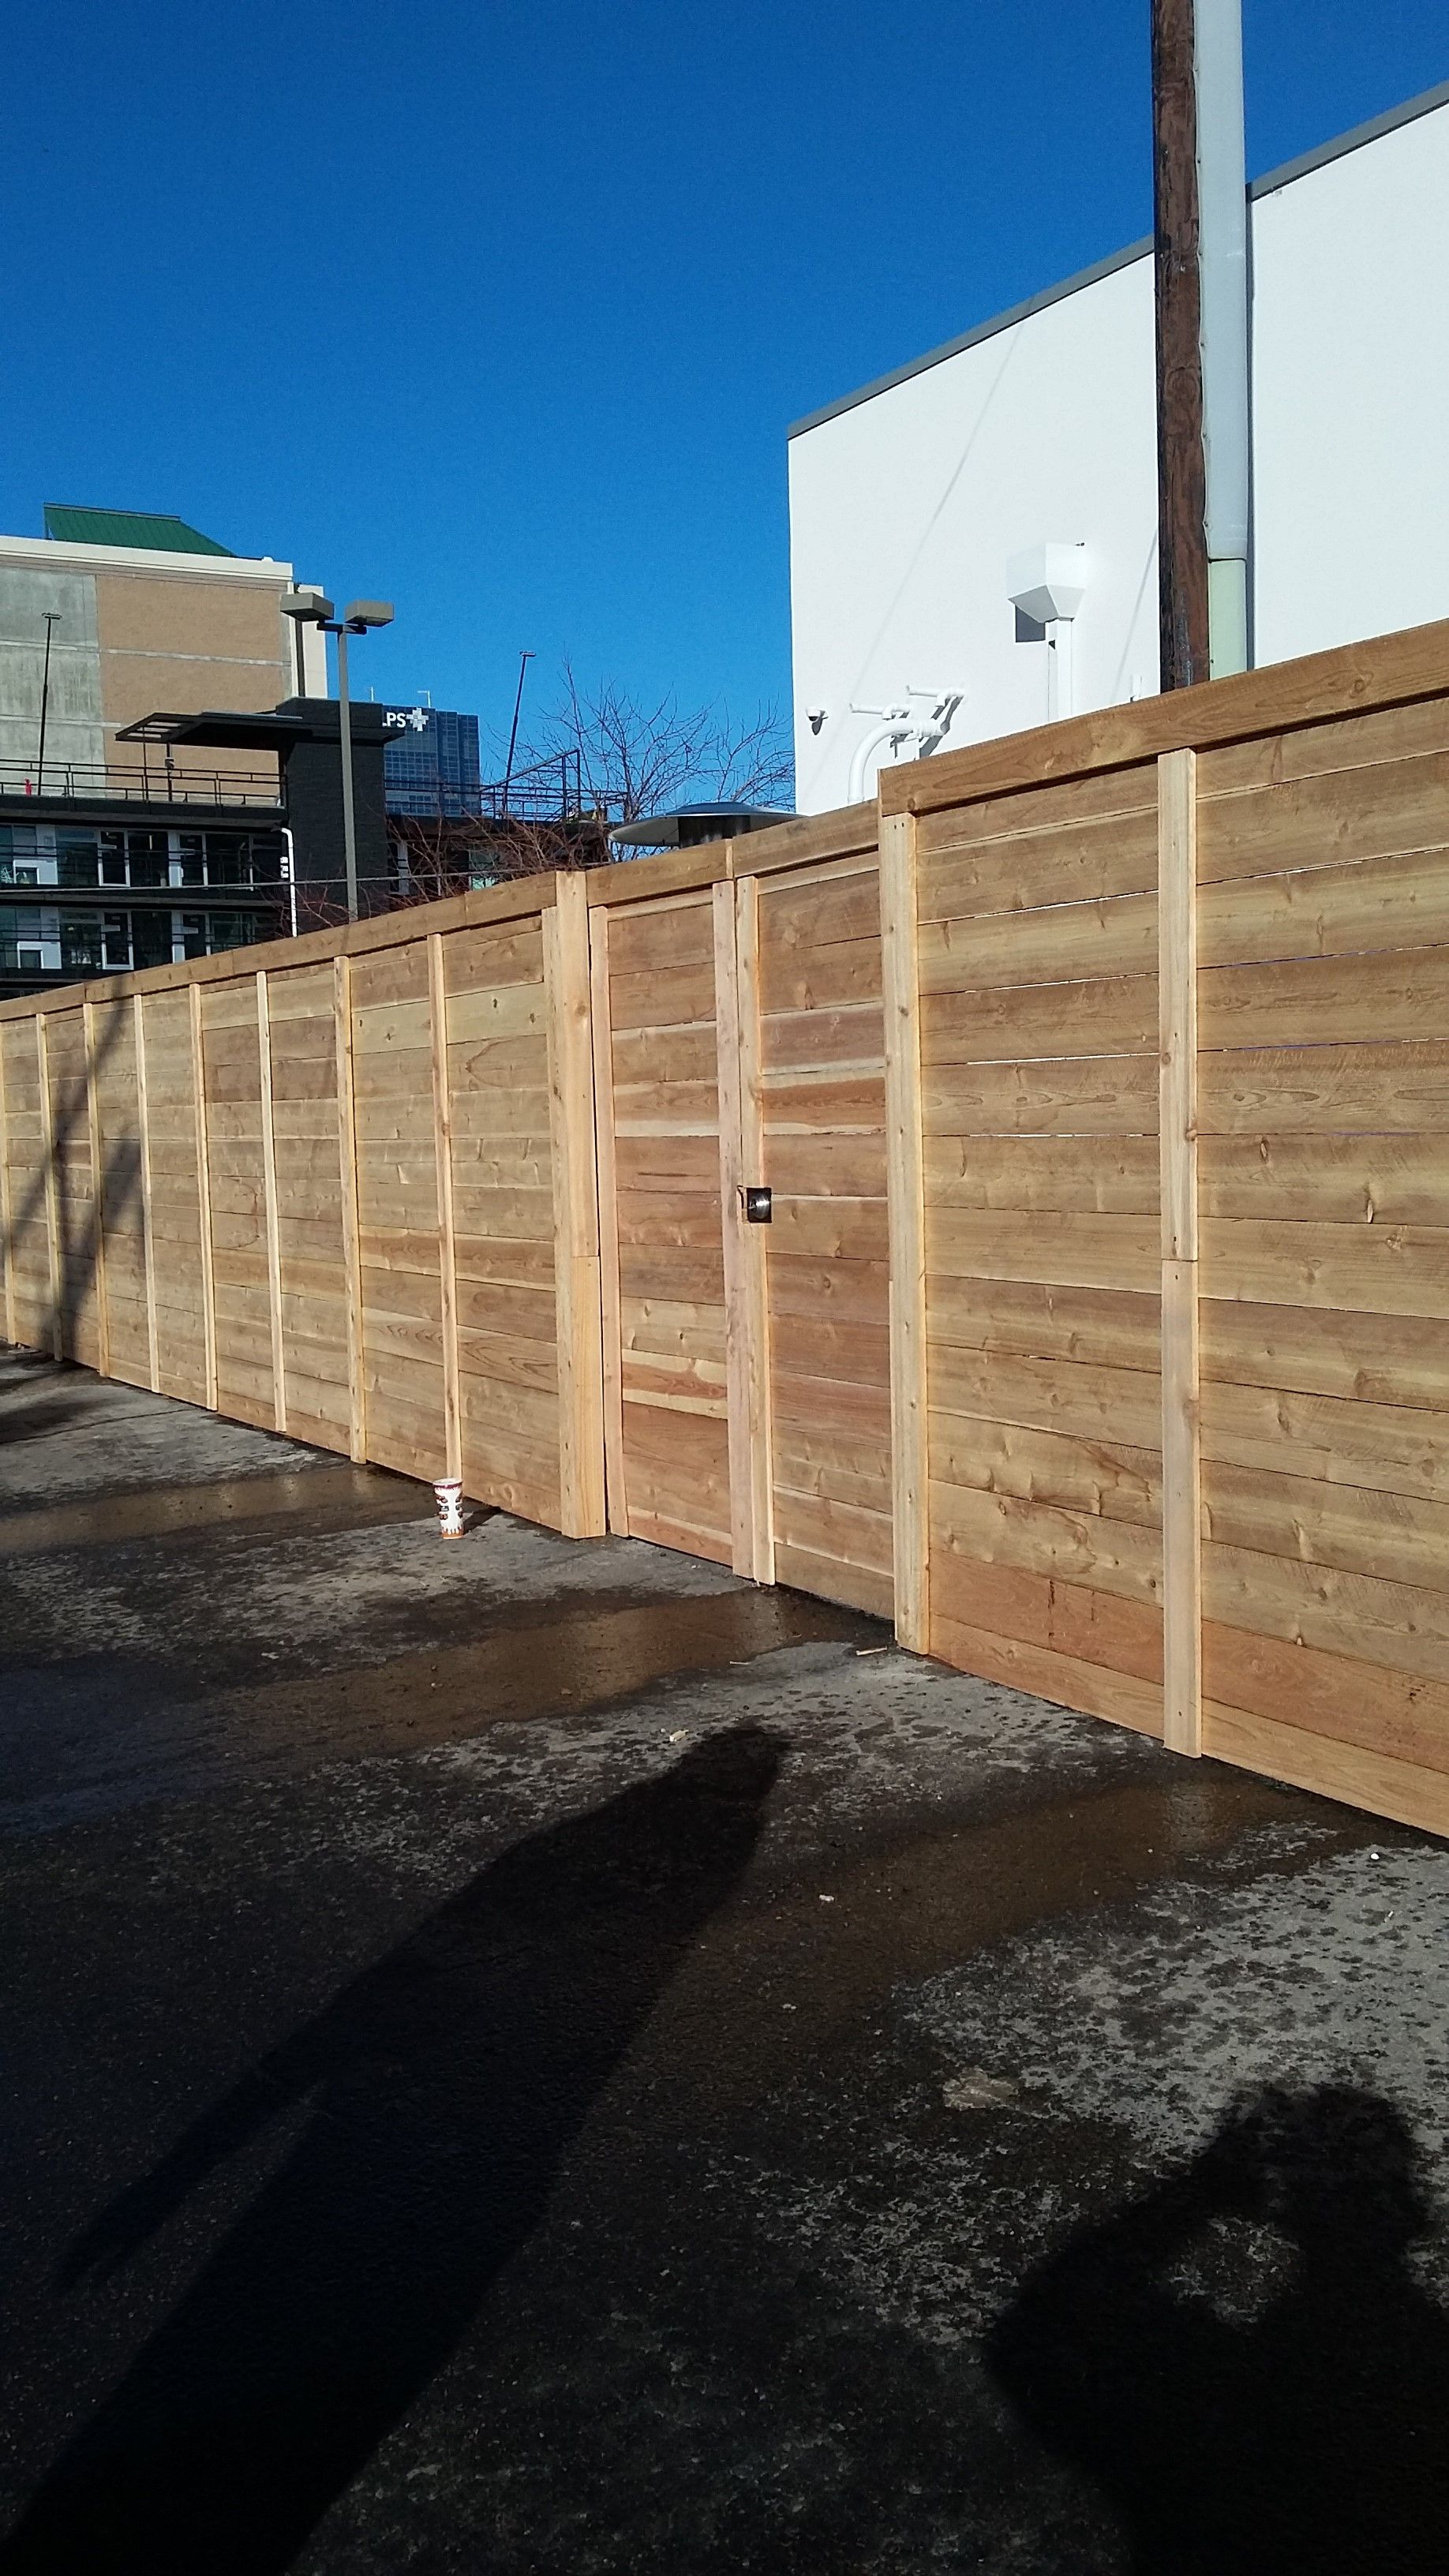 Horizontal fence and gate on metal posts by